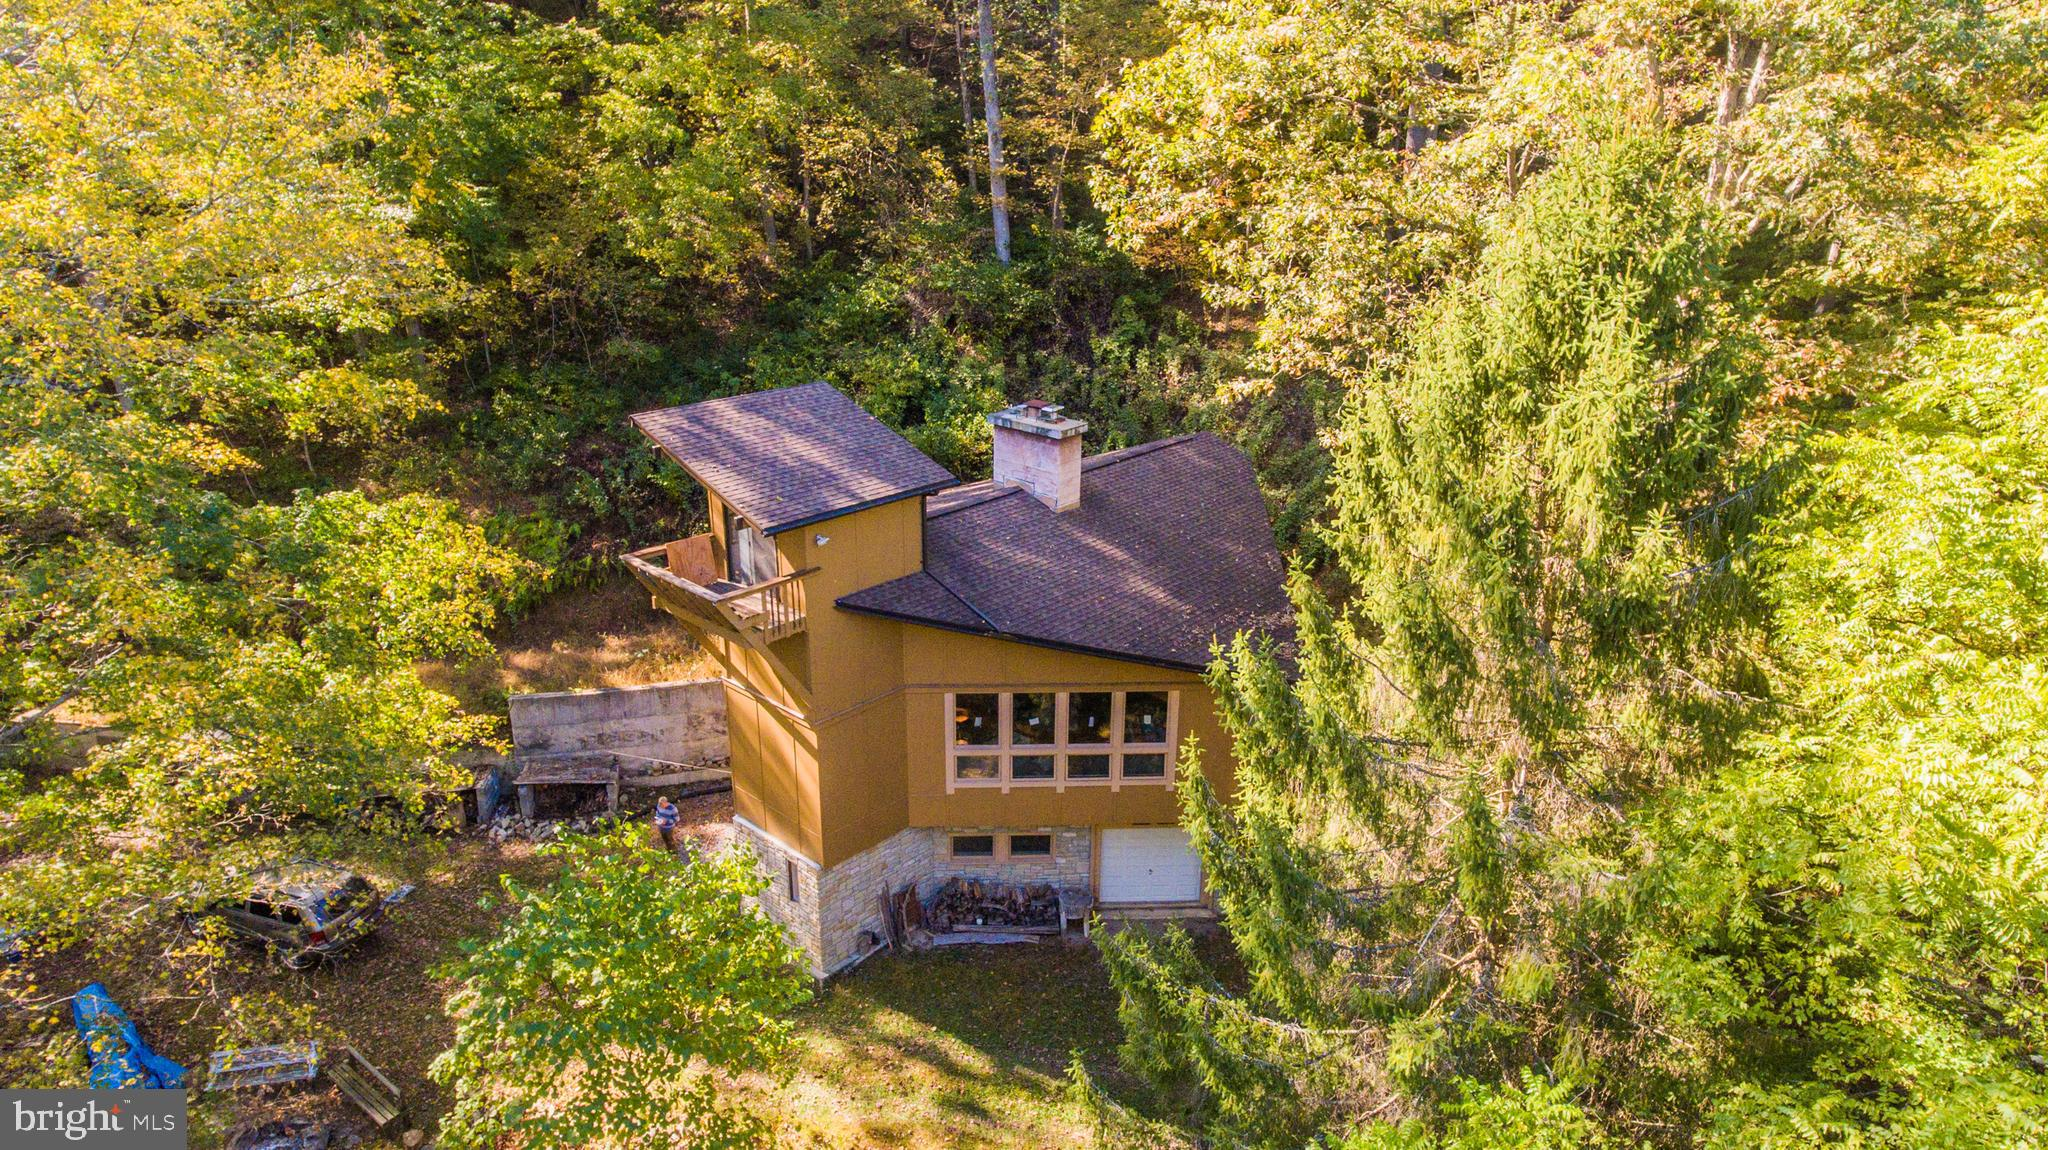 742 CACAPON RETREAT LANE, GREAT CACAPON, WV 25422